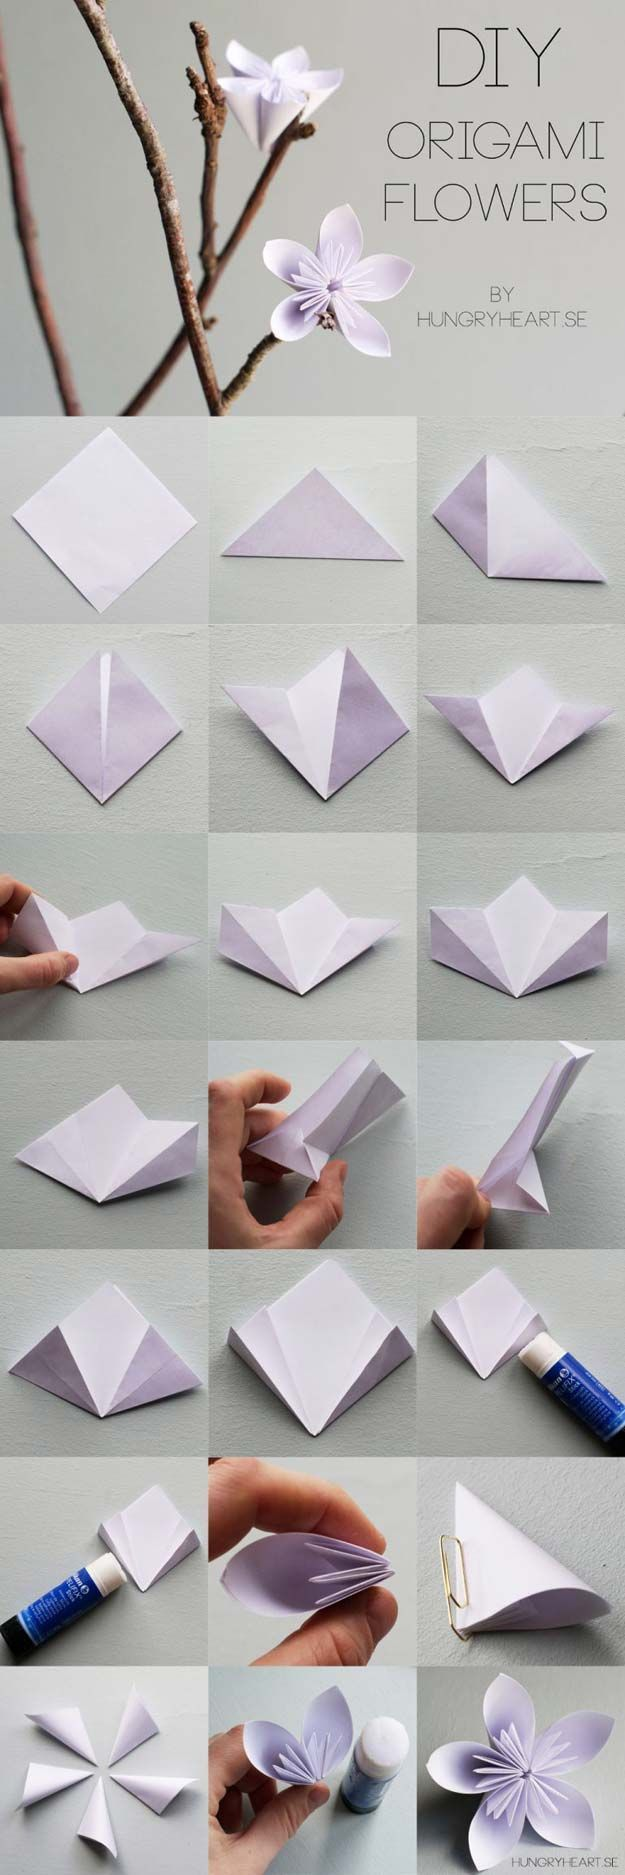 40 Best DIY Origami Projects To Keep Your Entertained Today  Best Origami Tutorials – Flower Origami – Easy DIY Origami Tutorial Projects for With Instructions for Flowers, Dog, Gift Box, Star, Owl, Buttlerfly, Heart and Bookmark, Animals – Fun Paper Crafts for Teens, Kids and Adults diyprojectsfortee… The post 40 Best DIY Origami Projects To Keep Your Entertained Today appeared first on Woman Casual.